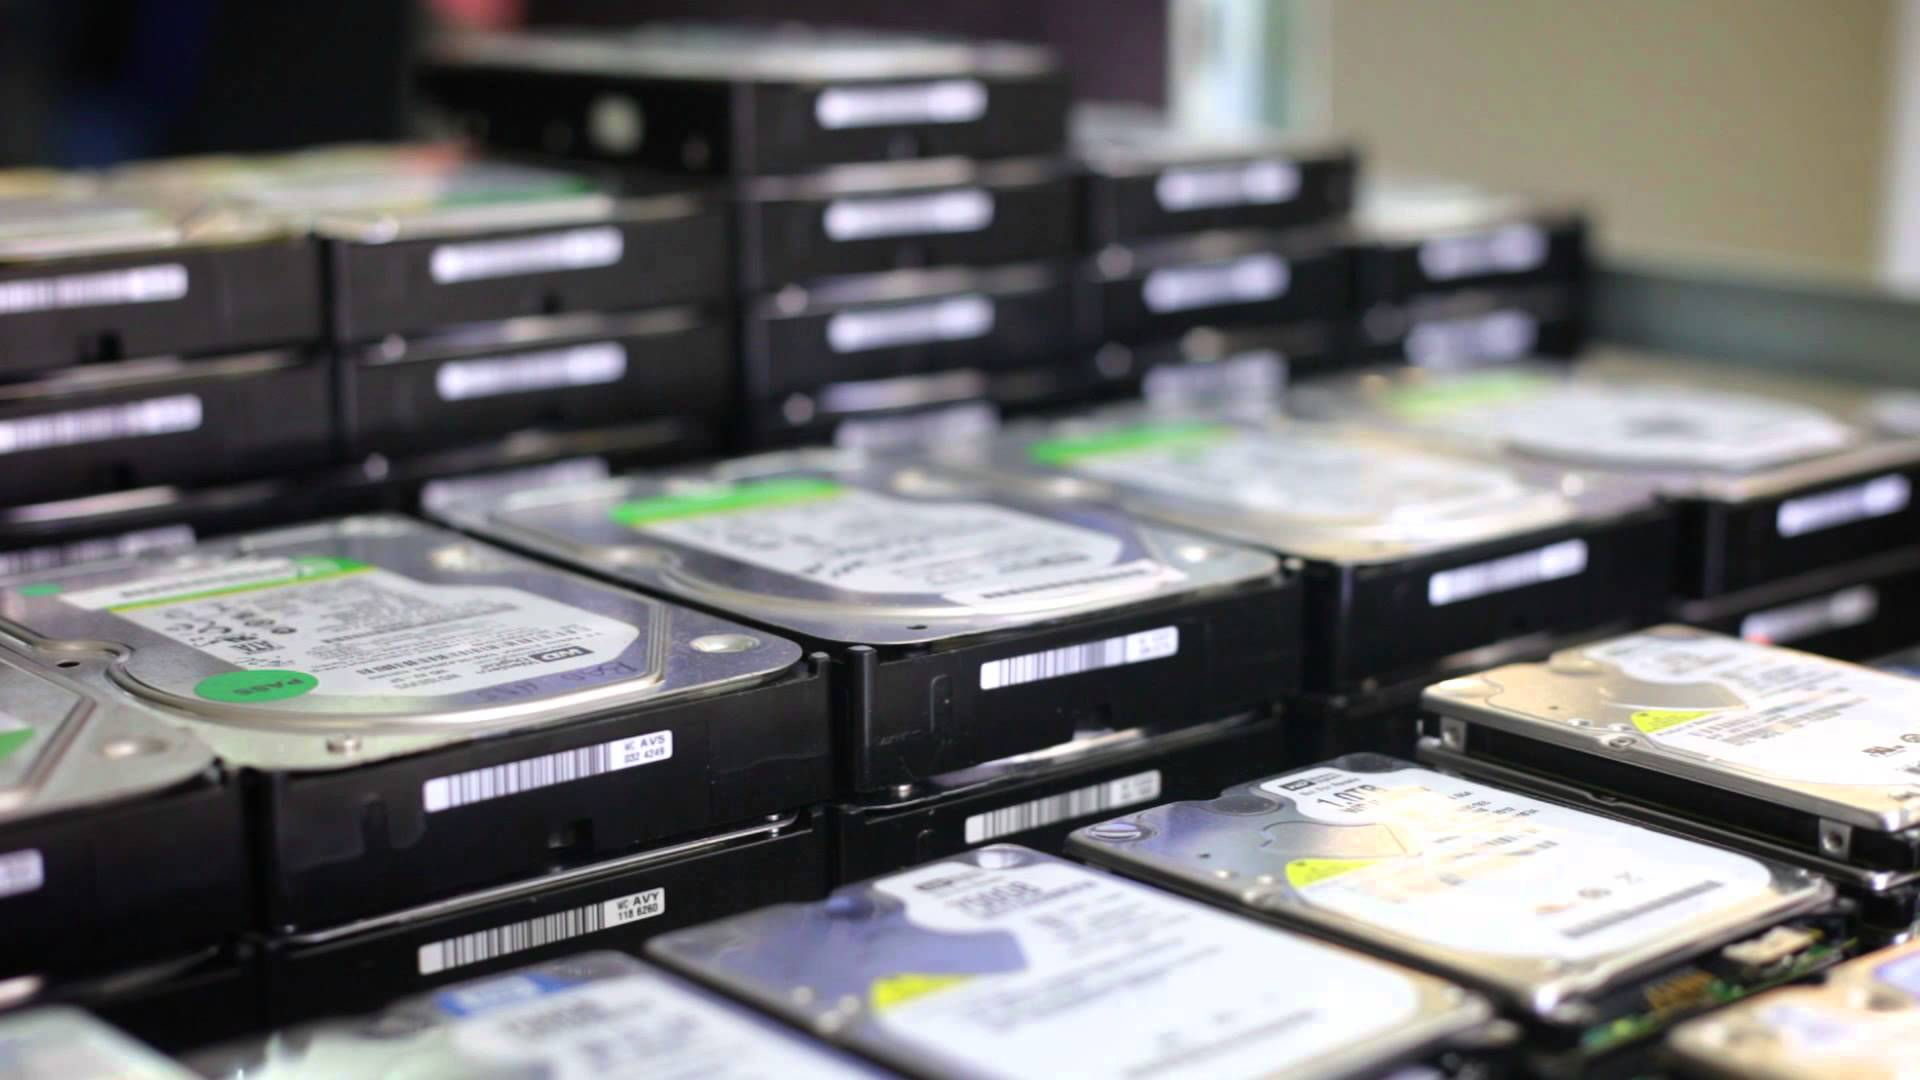 How to Retrieve Lost Data From Hard Drives?